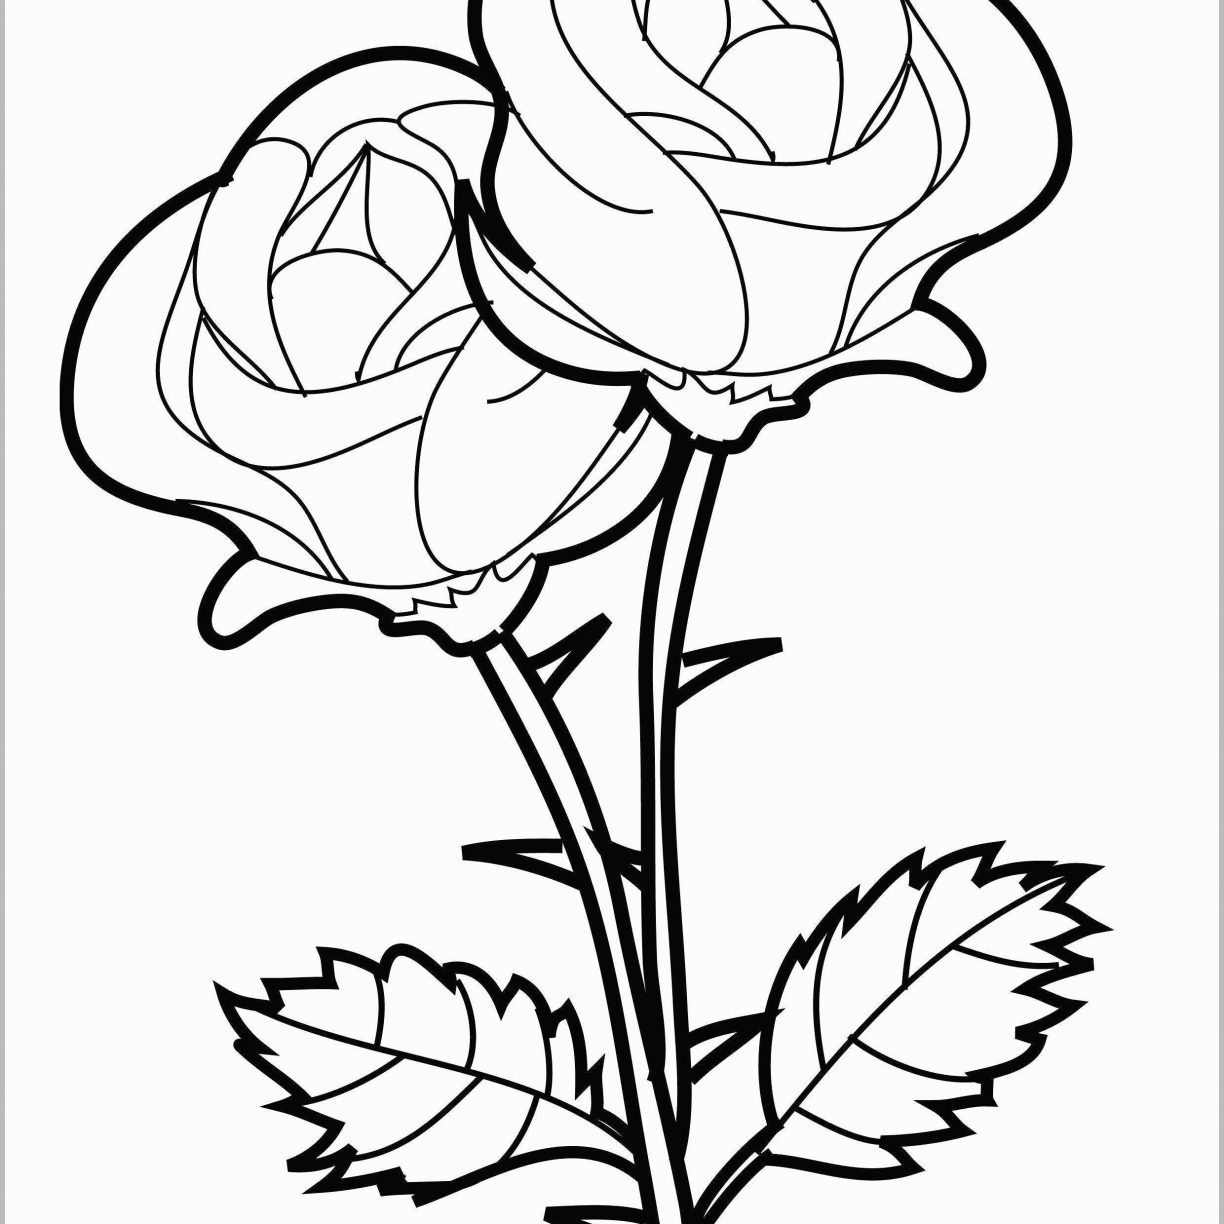 1224x1224 Wonderful Rose Garden Coloring Pages At Getcolorings Com Free